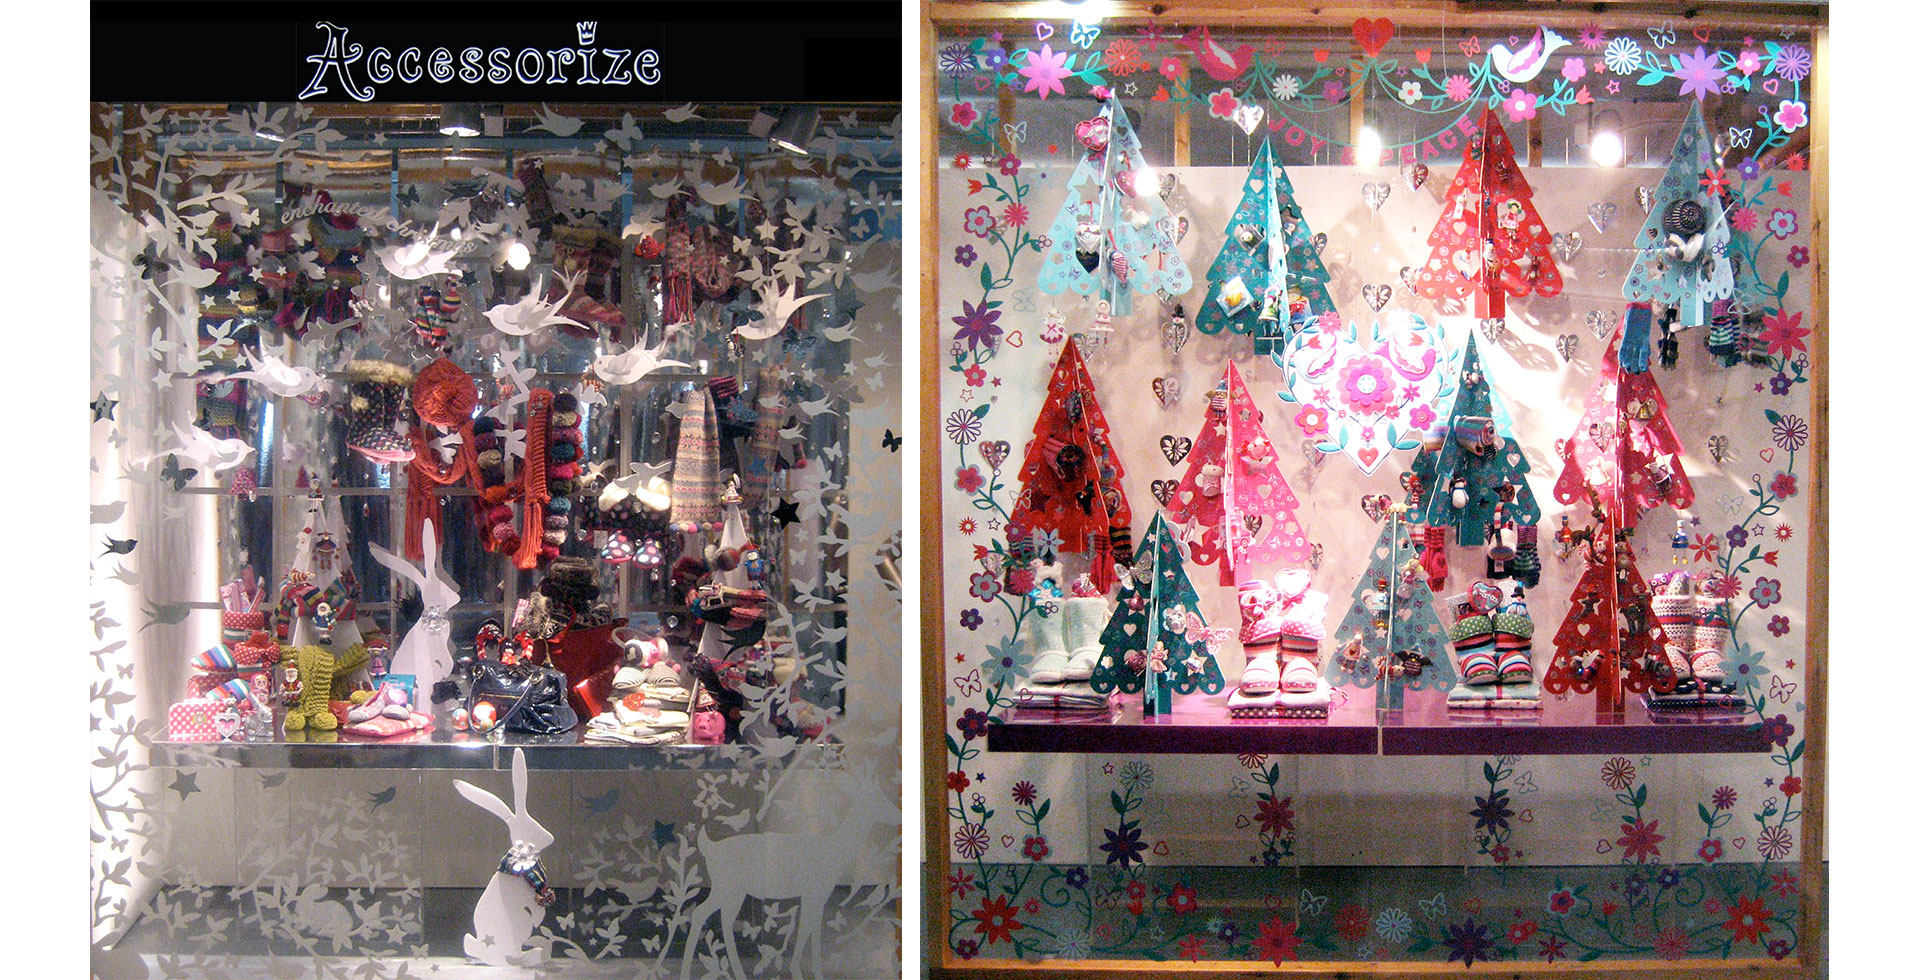 Accessorize Christmas windows